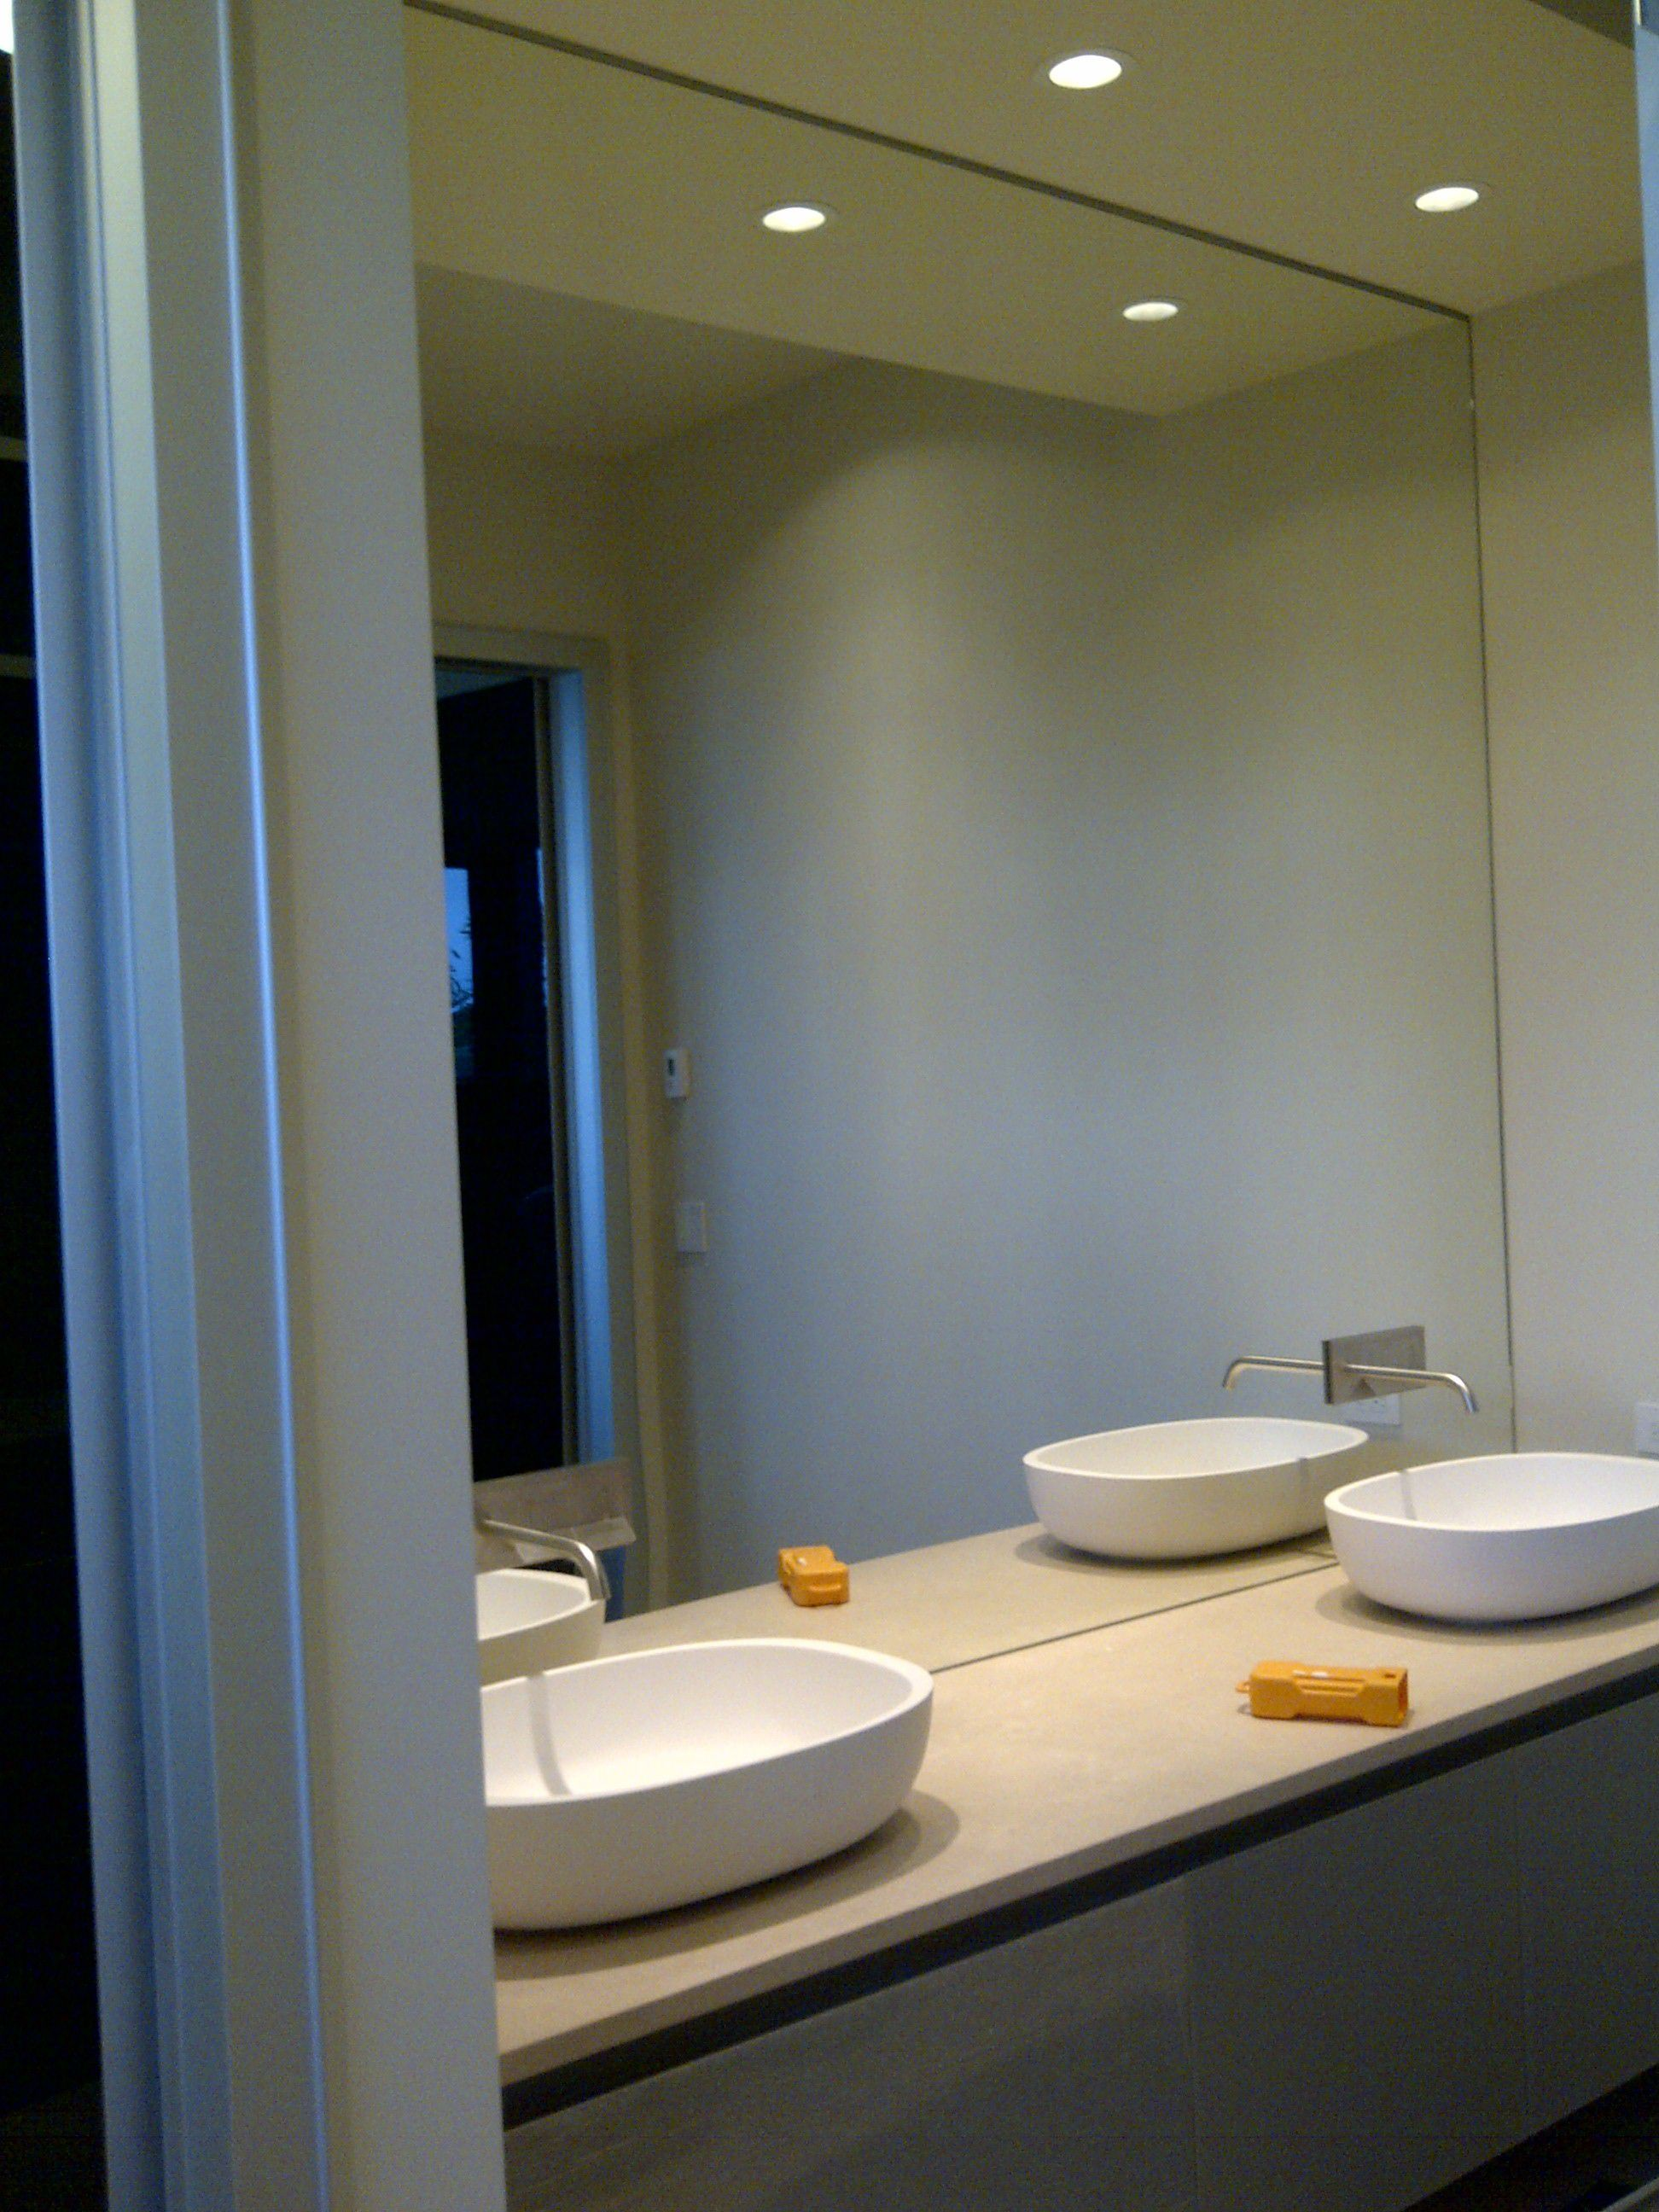 Superb Design Of The Bathroom Areas With White Double Sink Added Big Mirror Ideas